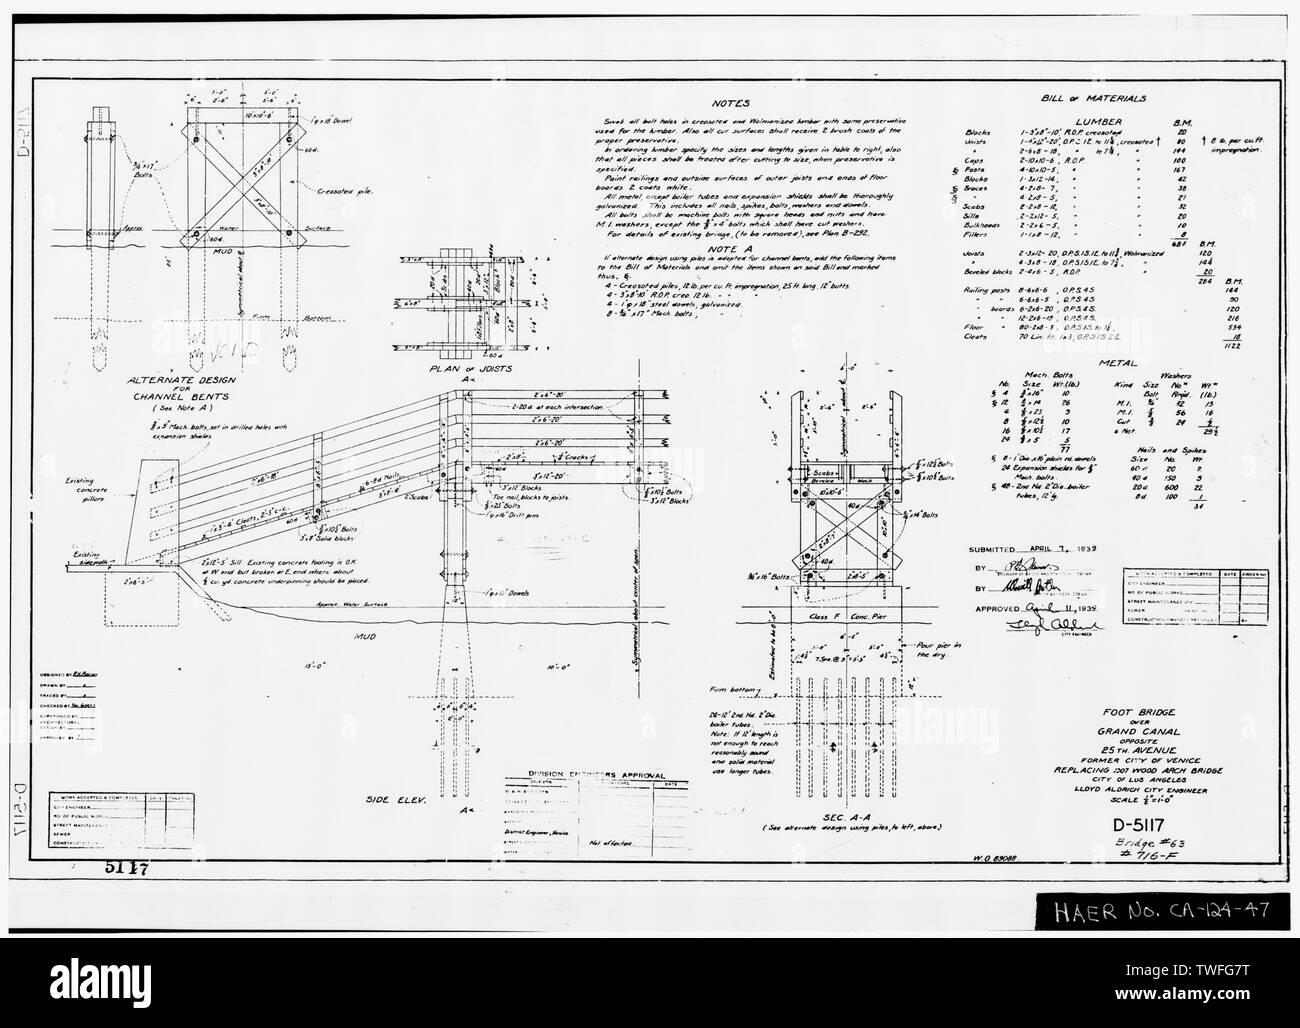 PLANS FOR EXISTING THREE-SPAN PEDESTRIAN BRIDGE OVER GRAND CANAL AT 25TH AVENUE Plan Sheet D-5117 (delineated by R. H. Bacon, April 1939) - Venice Canals, Community of Venice, Los Angeles, Los Angeles County, CA - Stock Image